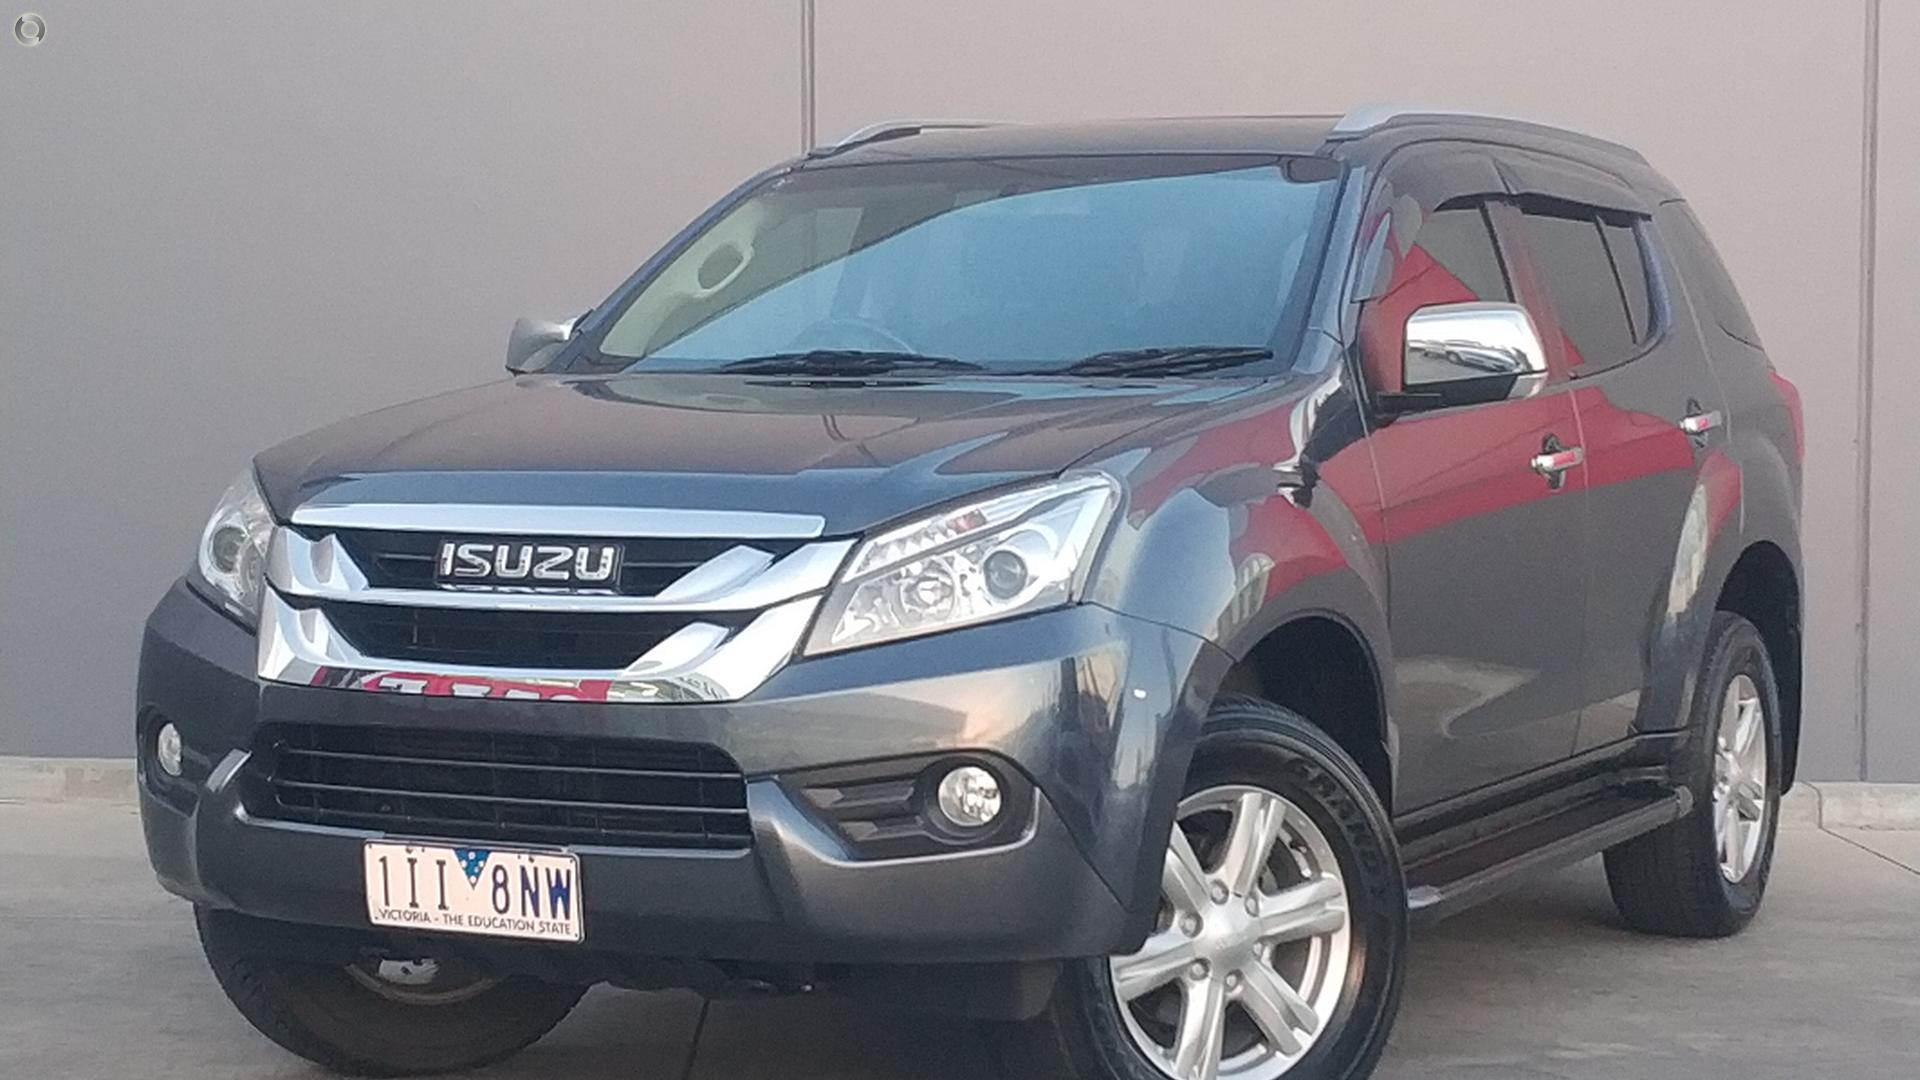 2016 Isuzu Mu-x LS-T (No Series)